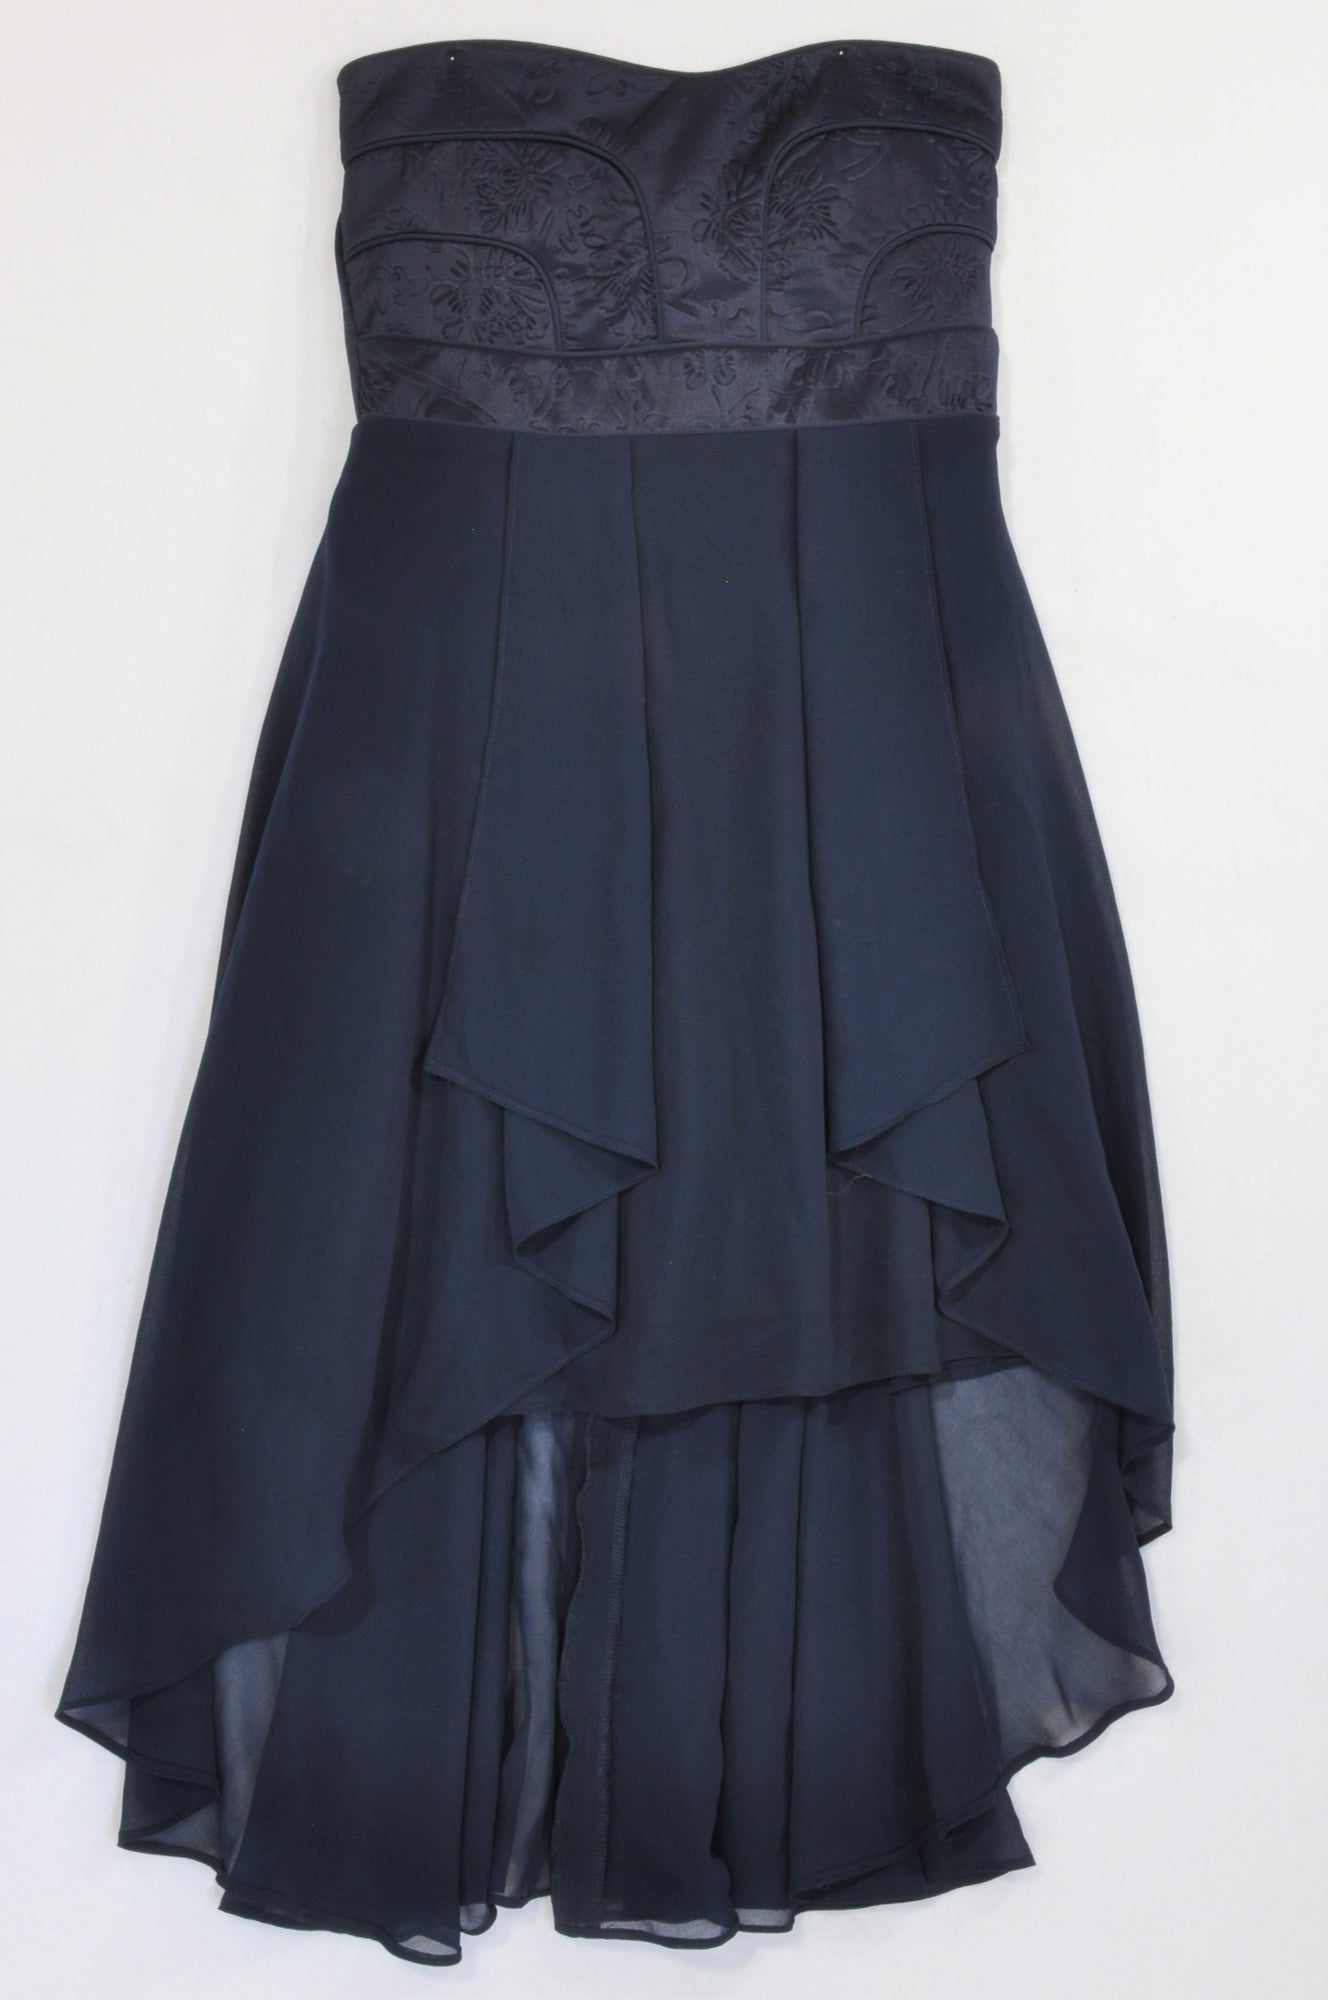 New Jolie Comme Moi Navy Embossed Flower Bodice High Low Dress Women Size M